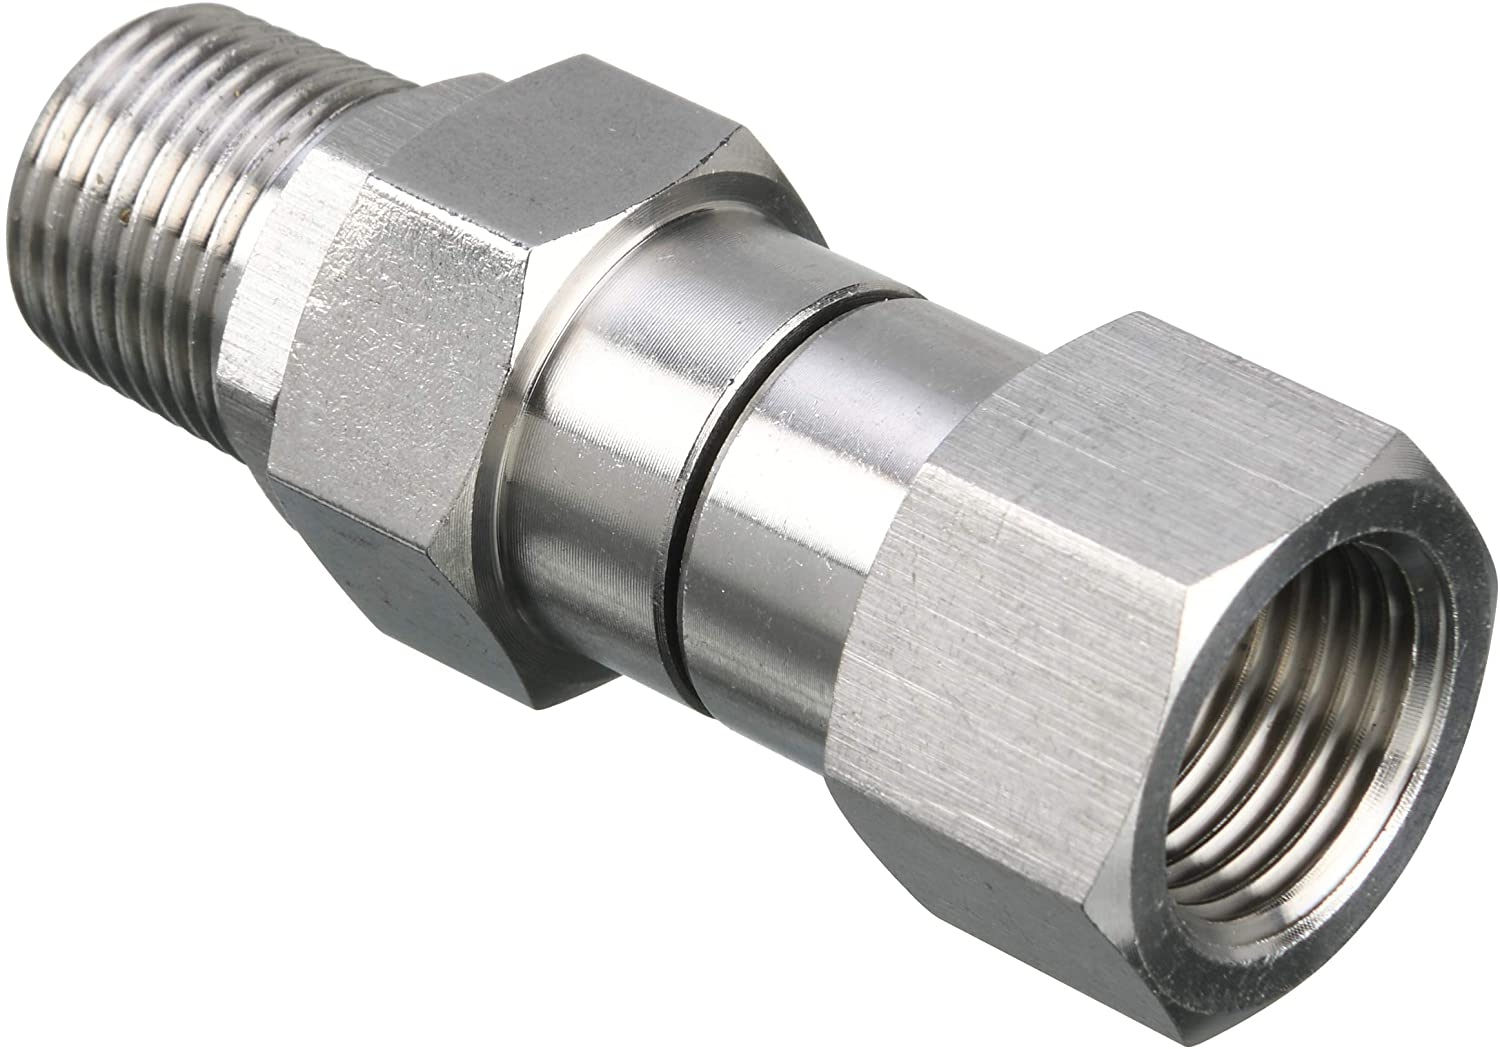 M MINGLE Pressure Washer Swivel, 3/8 Inch NPT Male Thread Fitting, Stainless Steel, 4500 PSI